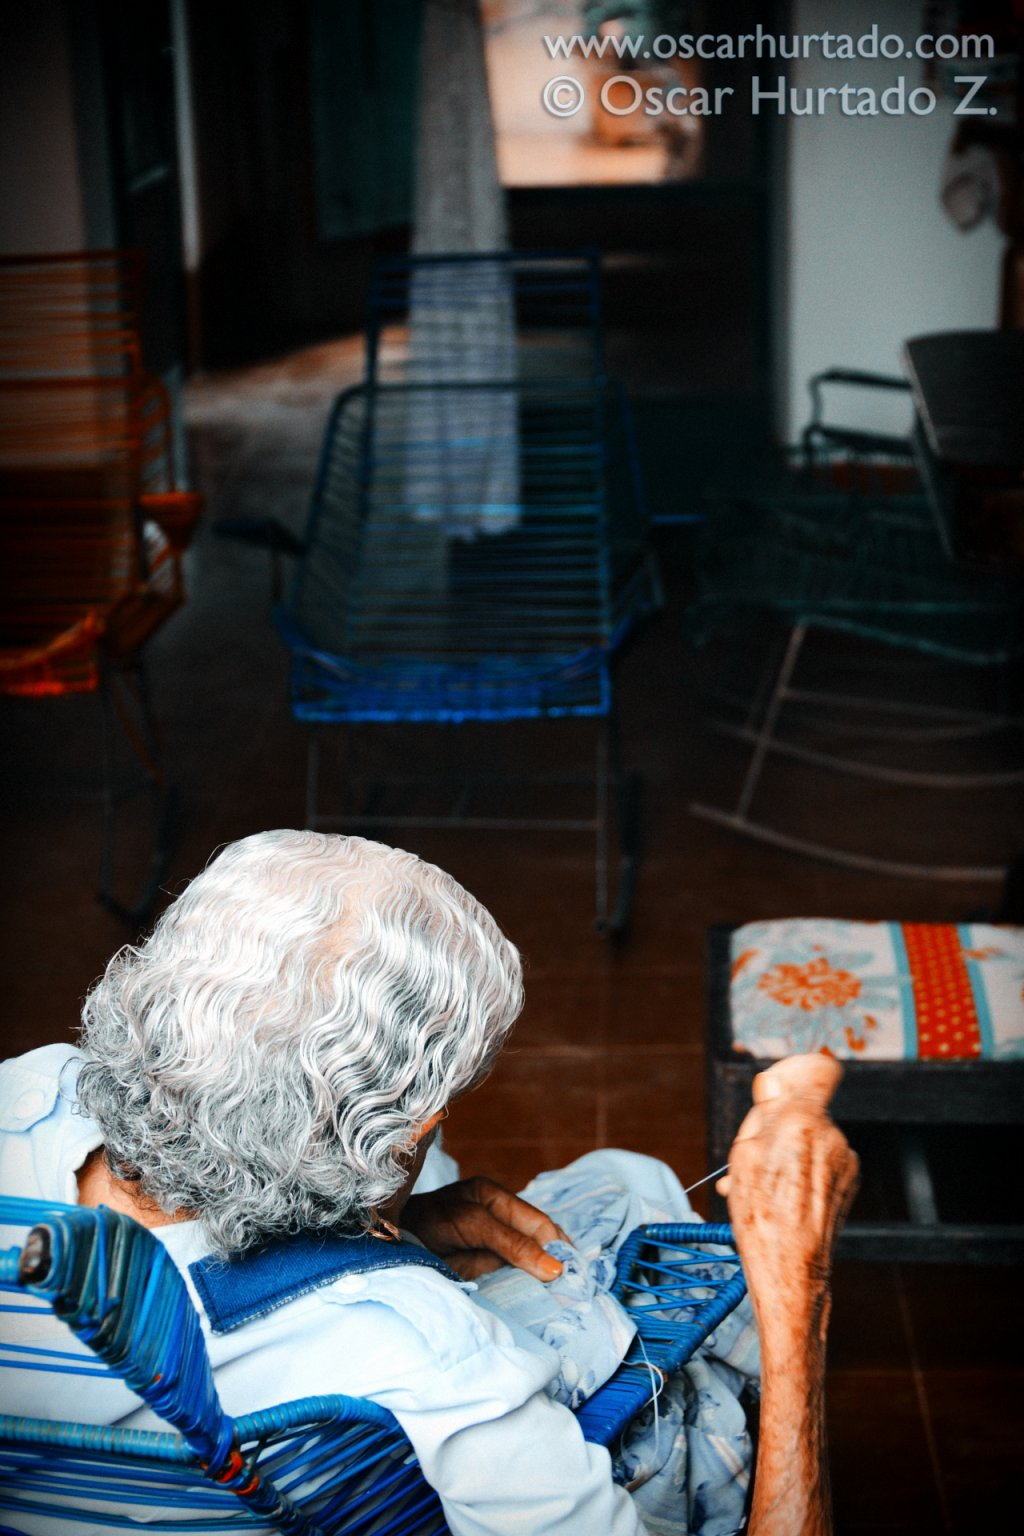 Picturesque view of an old lady peacefully sewing in her living room during one humid summer afternoon